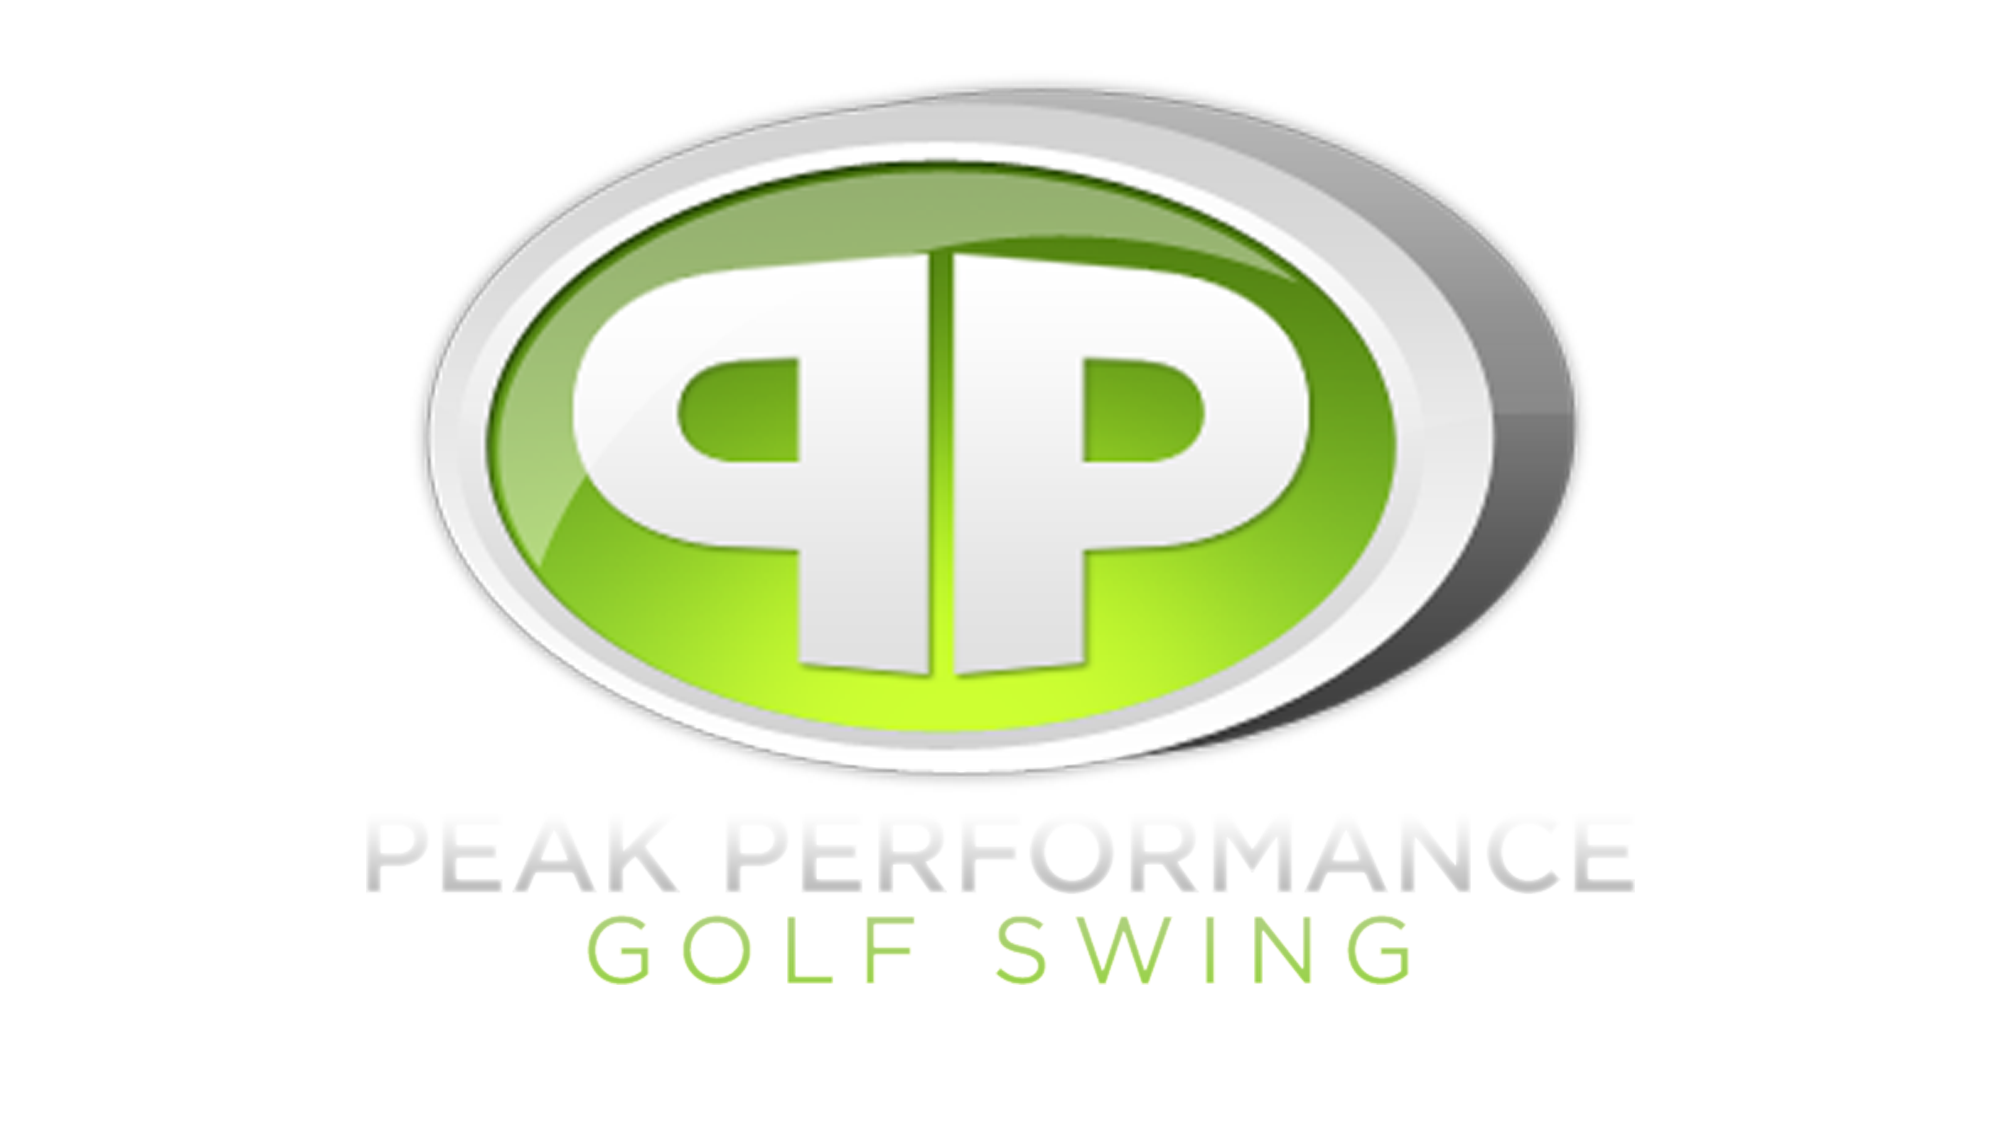 PeakPerformance_LOGO